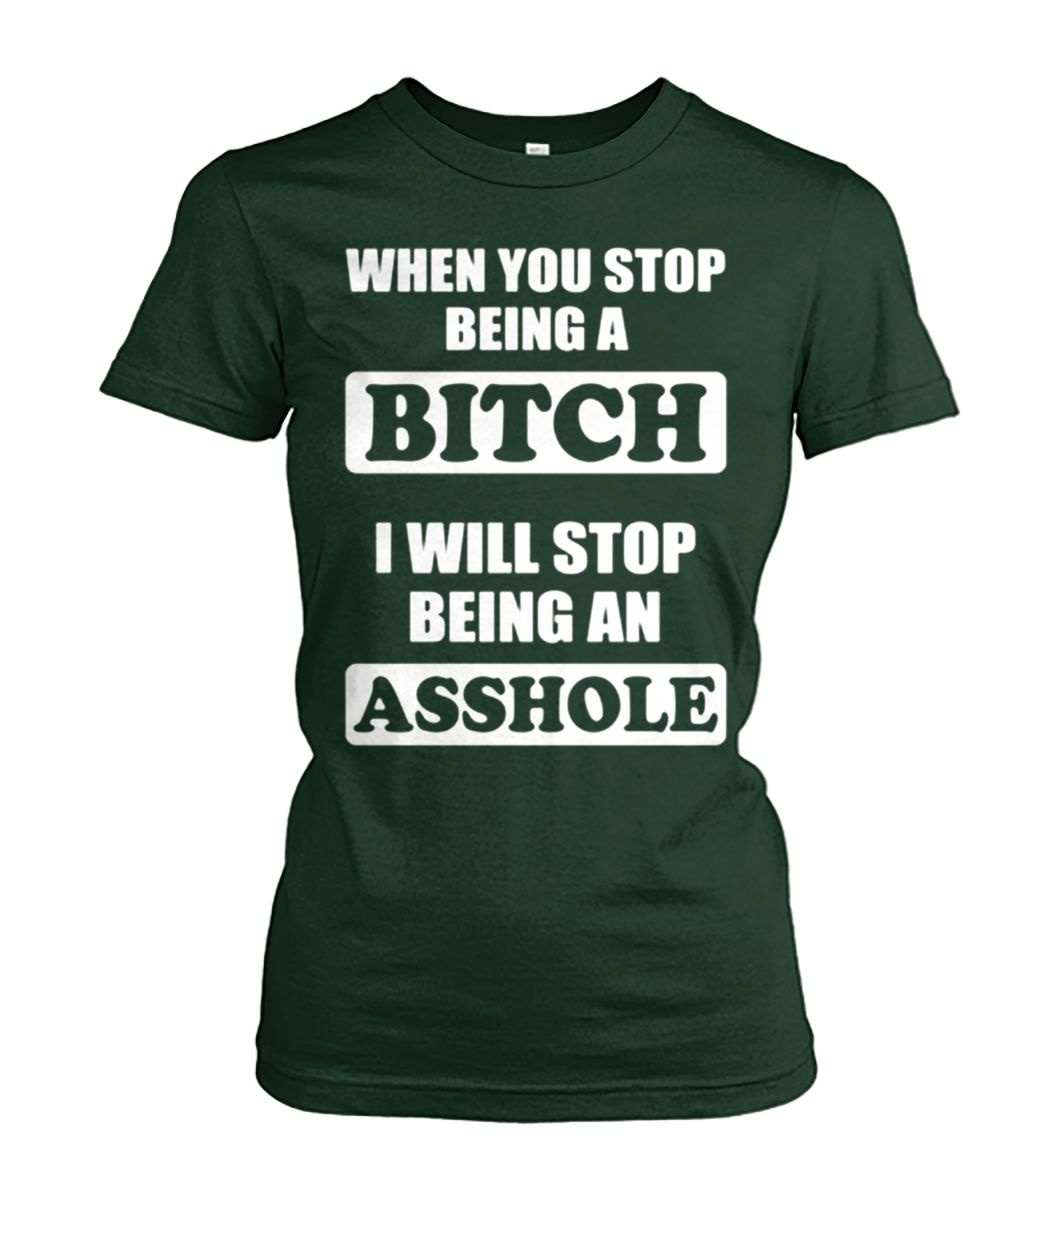 [Hot version] When you stop being a bitch I will stop being an asshole shirt